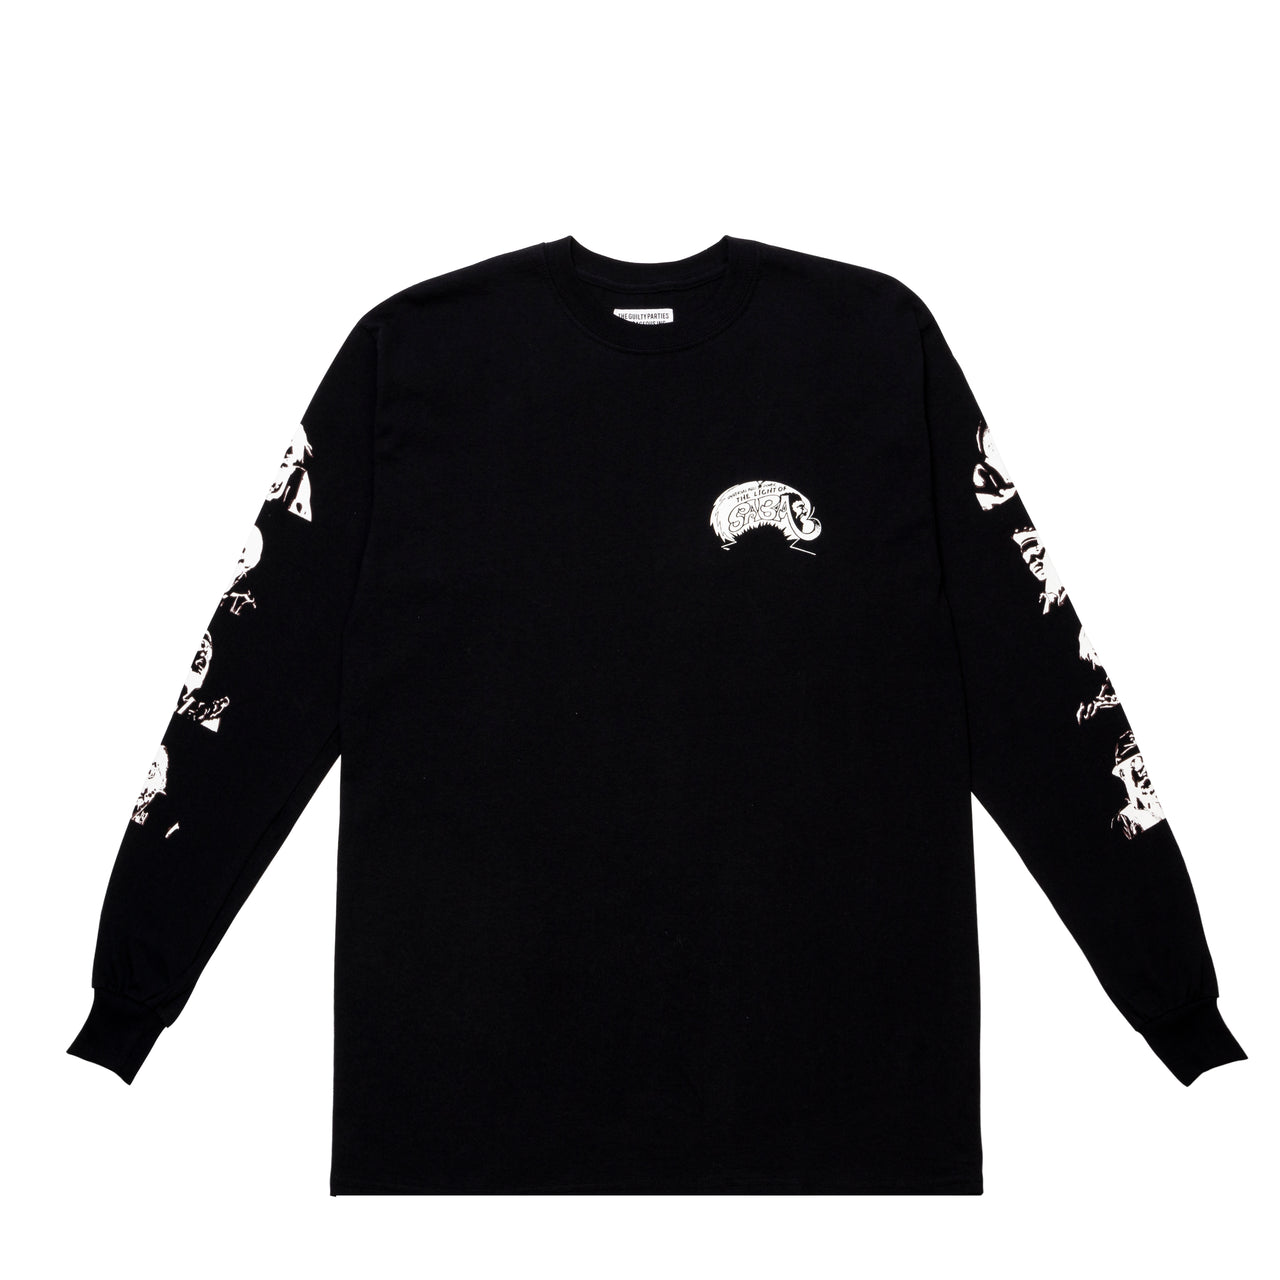 CREW NECK LONG SLEEVE T-SHIRT (TYPE-1)